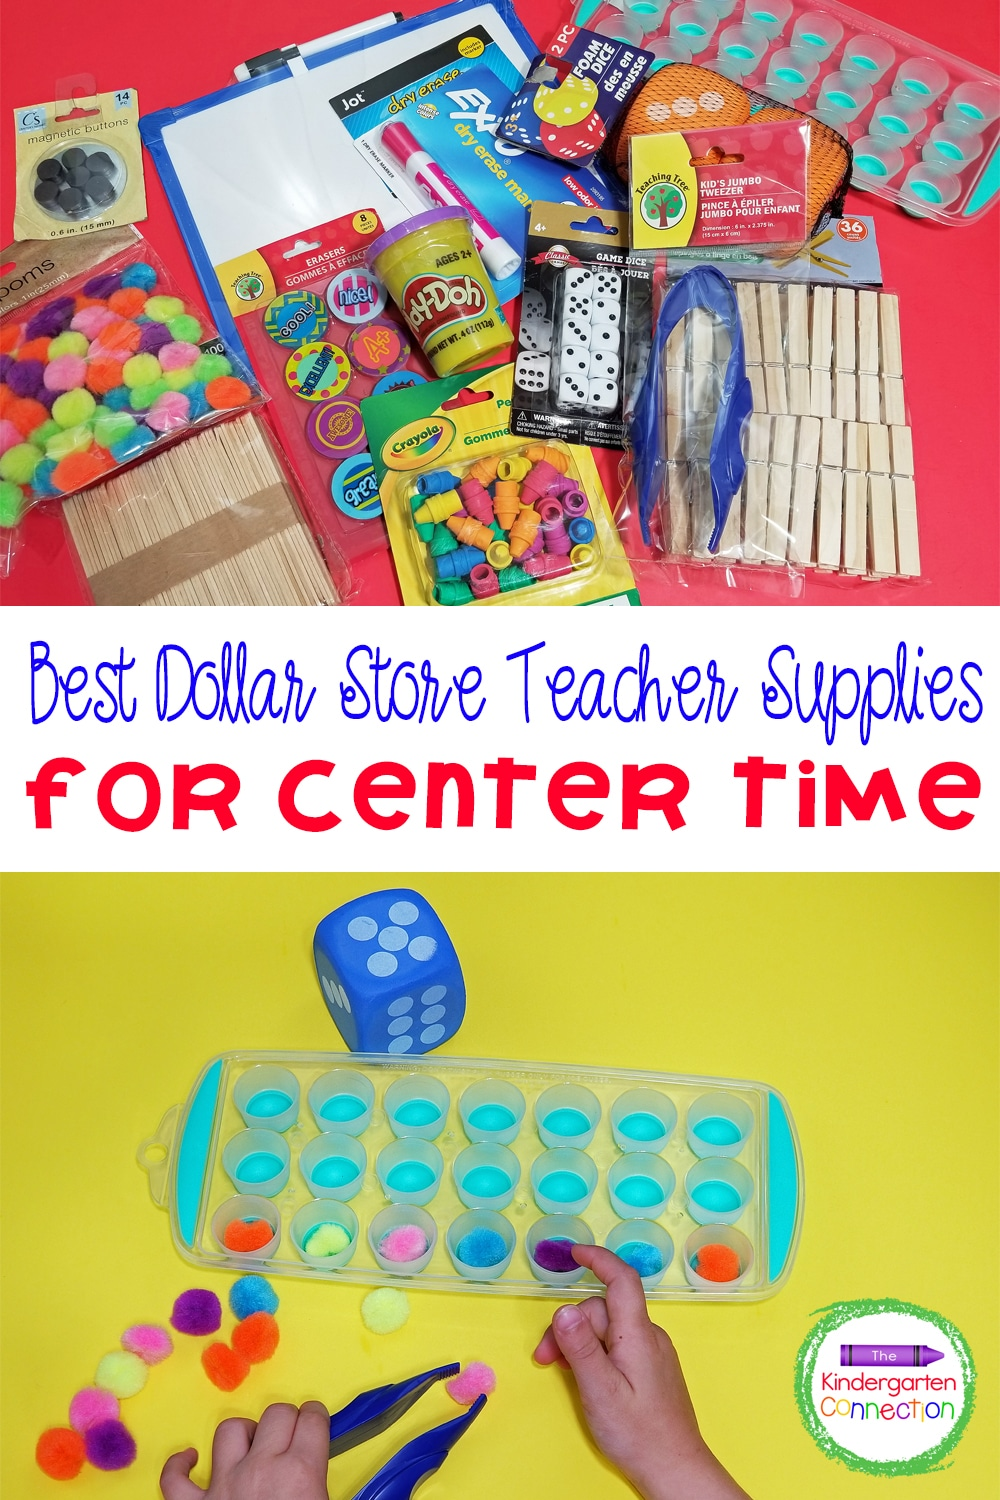 Check out some of my favorite dollar store teacher supplies perfect for hands-on learning in Pre-K and Kindergarten center time!